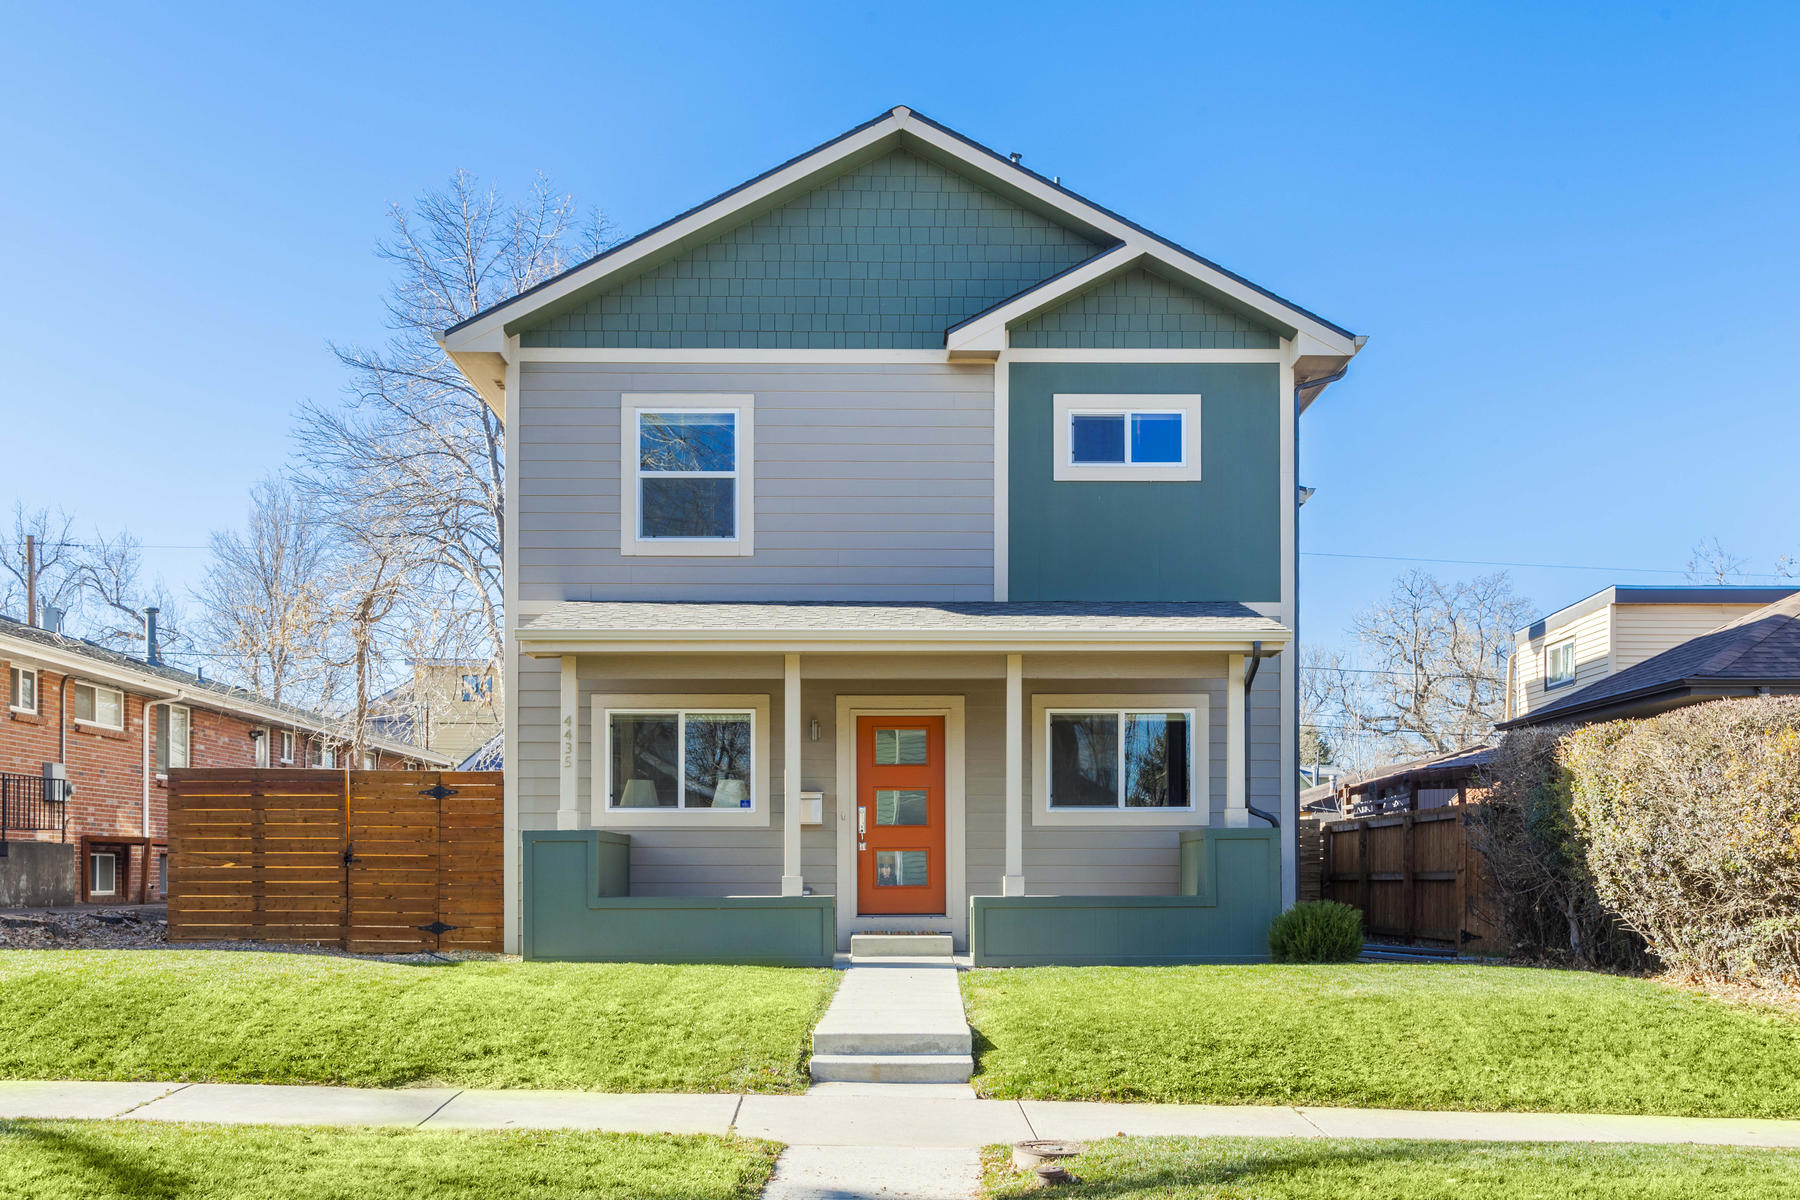 Single Family Home for Active at This Is The House You've Been Waiting For! 4435 Osceola Street Denver, Colorado 80212 United States